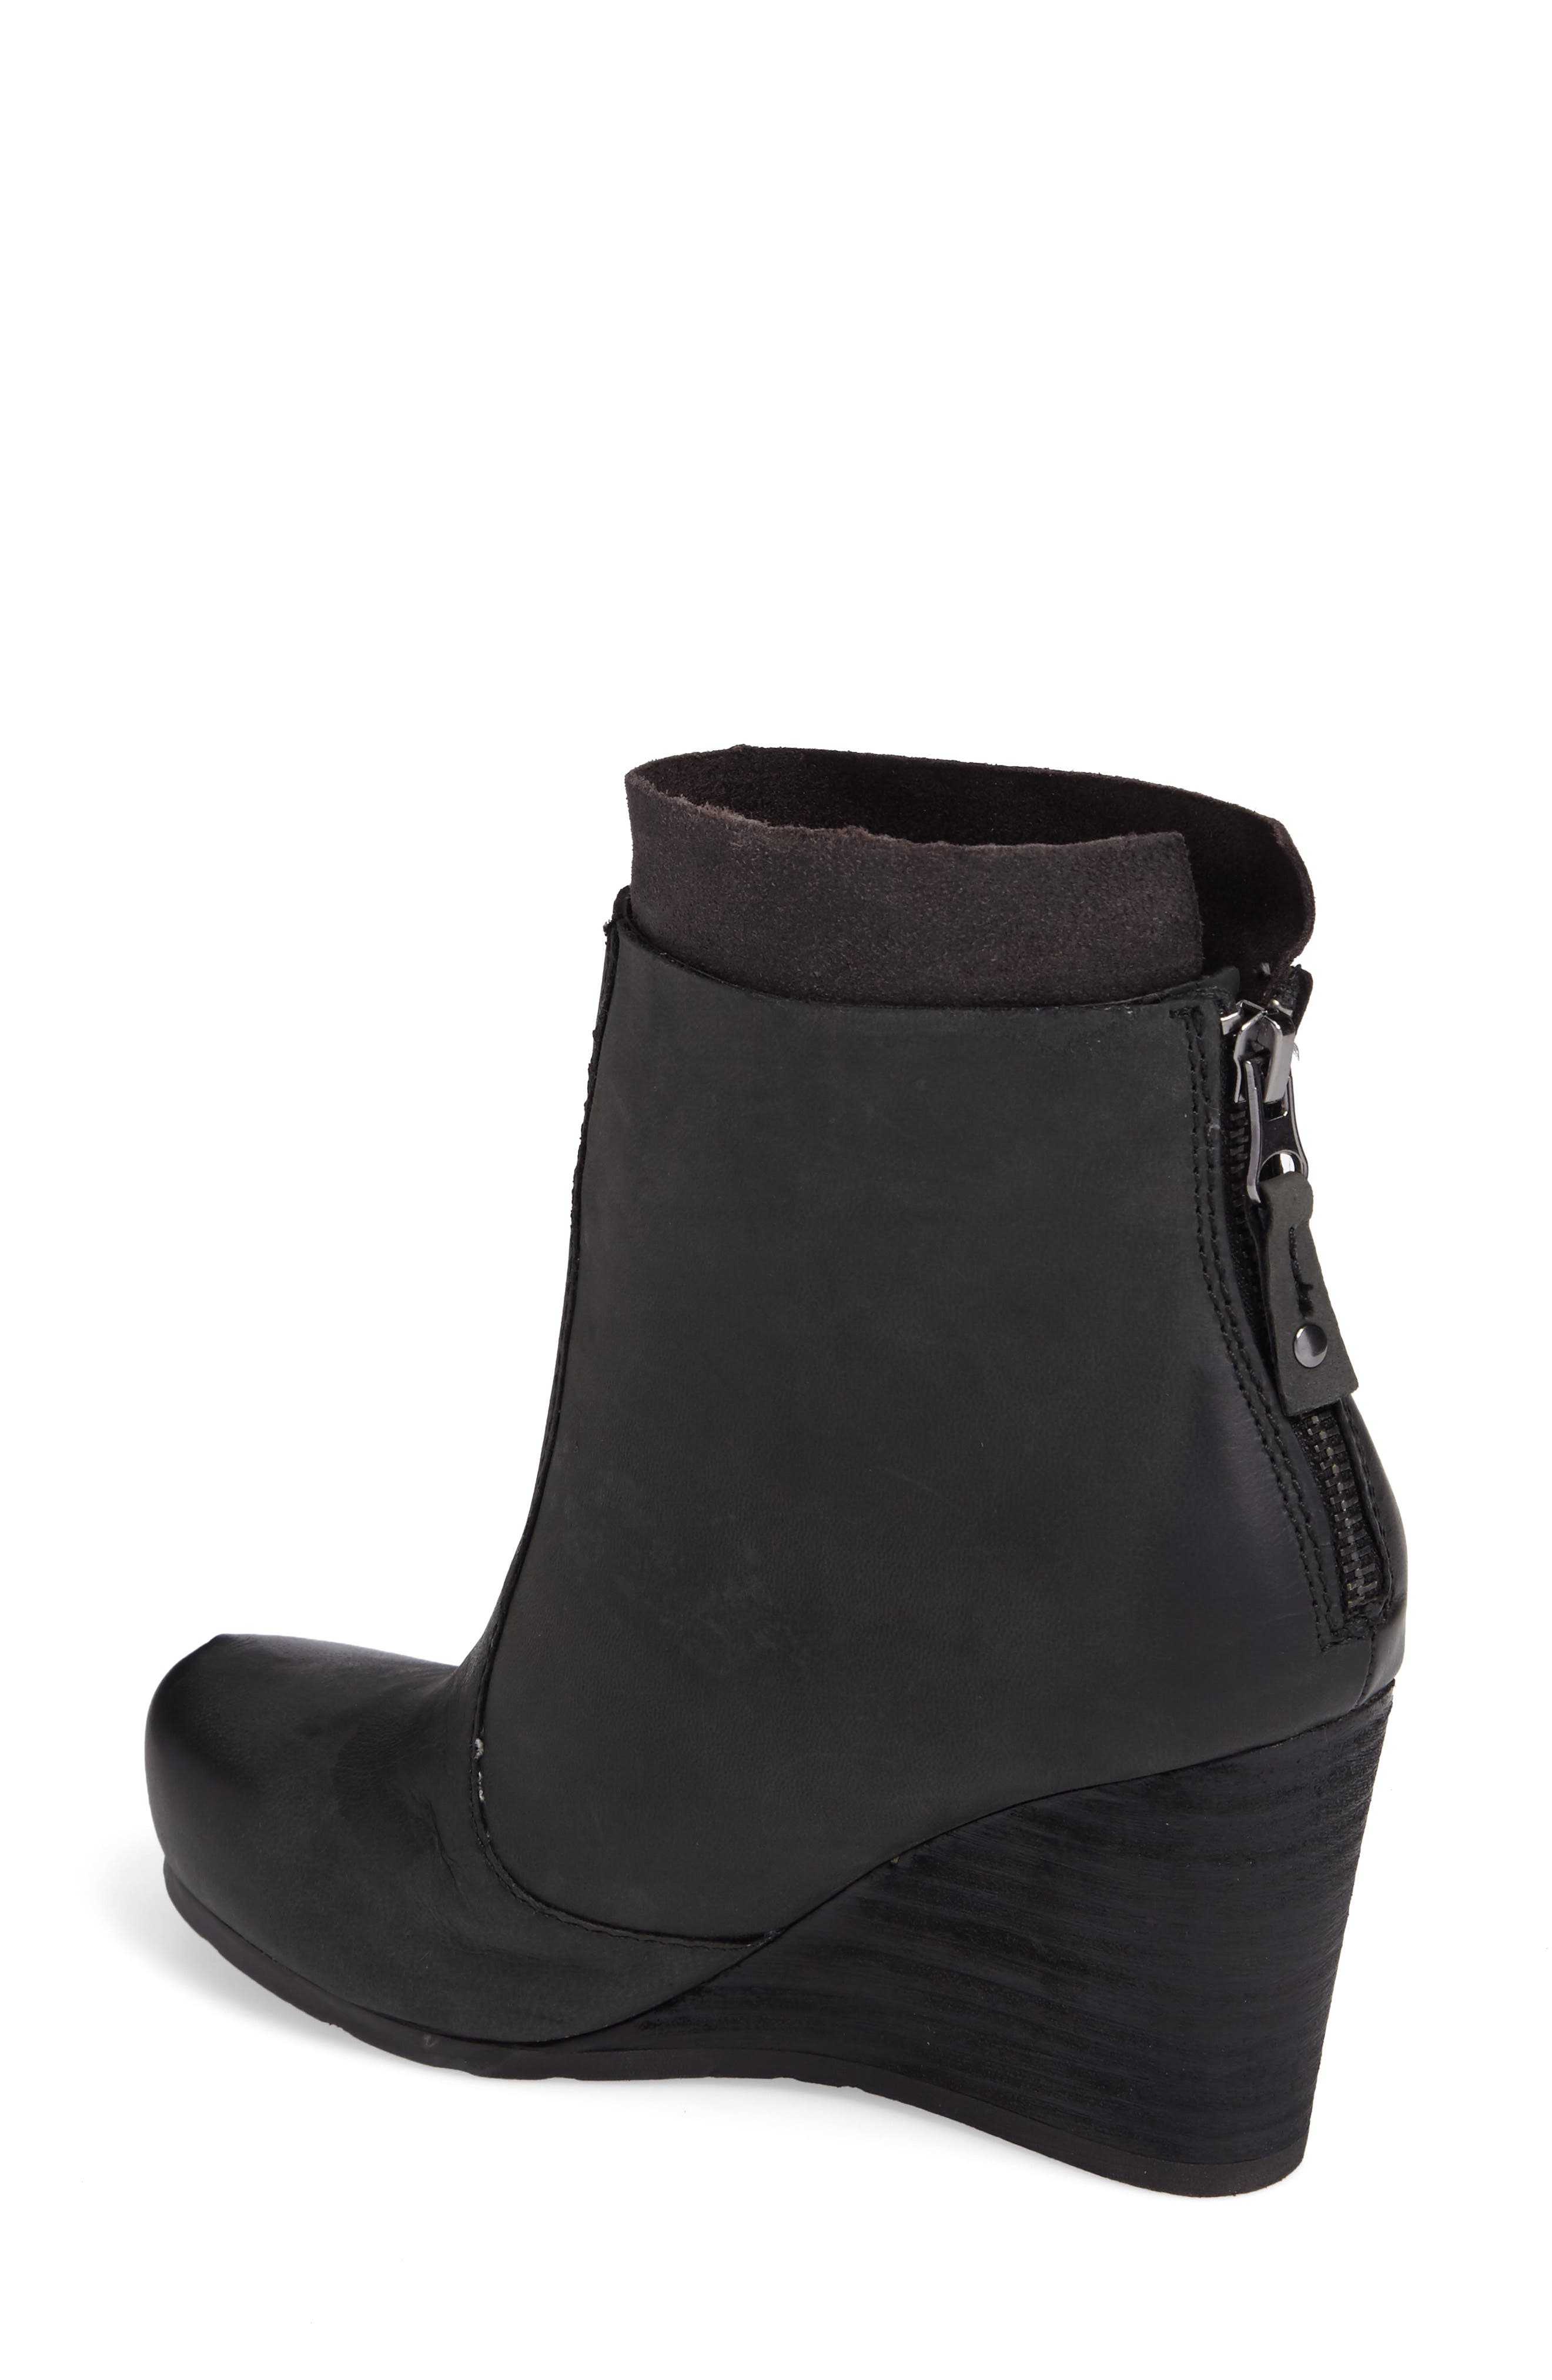 Vagary Wedge Bootie,                             Alternate thumbnail 2, color,                             BLACK LEATHER